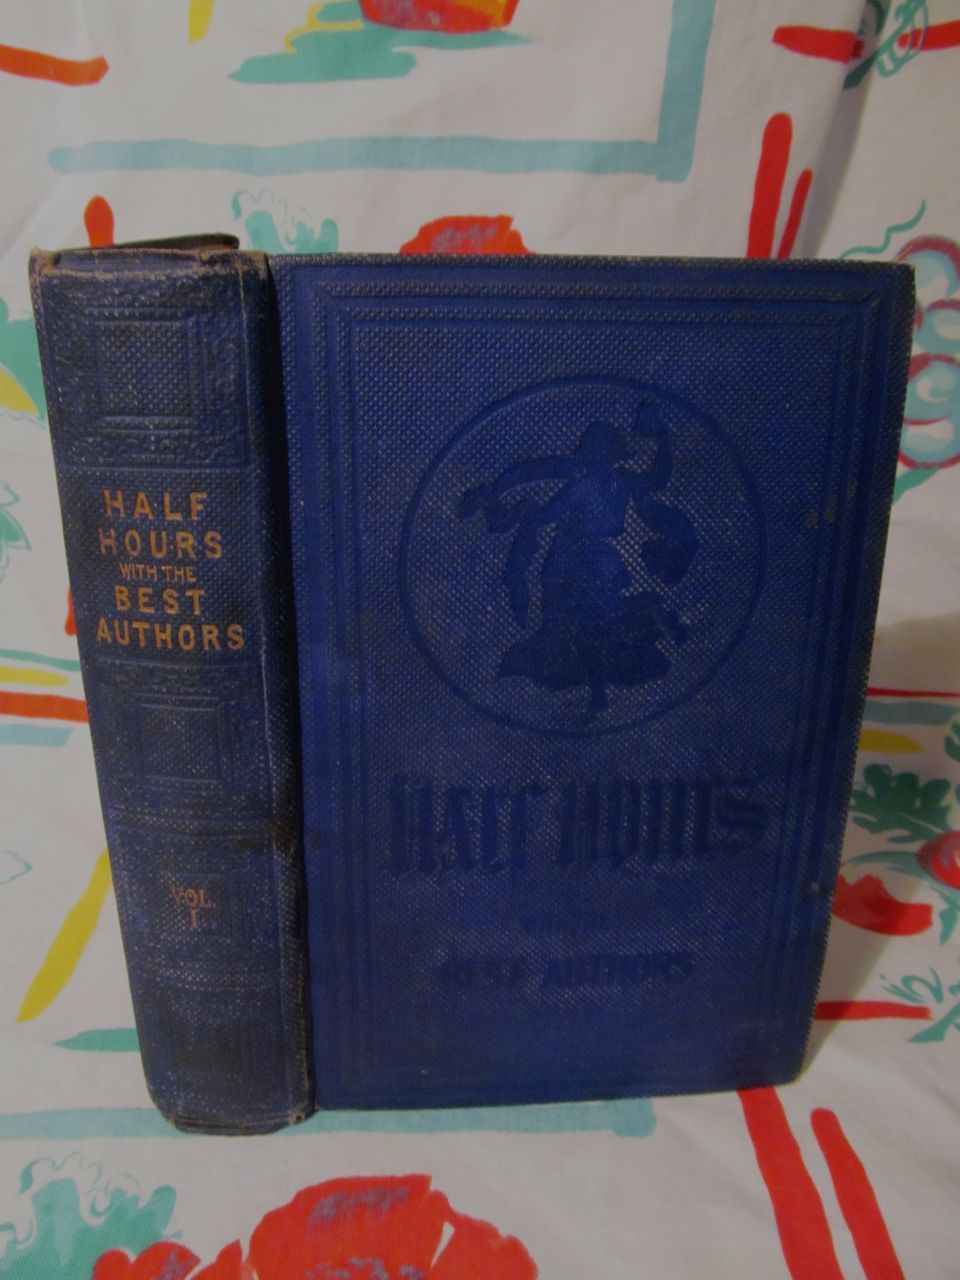 Half Hours with the Best Authors,1850+,Charles Knight,Vol One